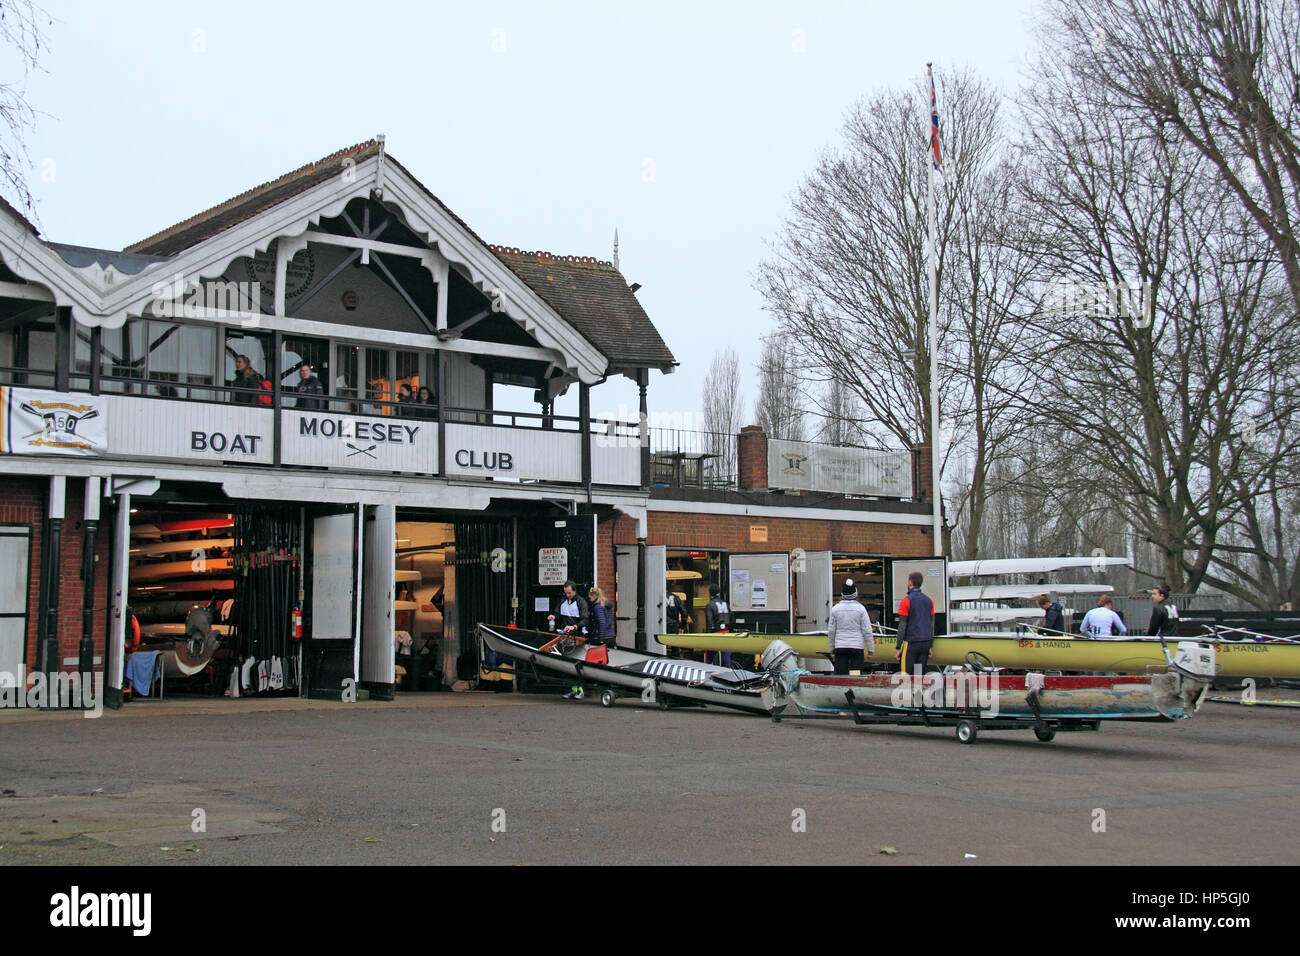 London, UK. 18th February, 2017. Members of Molesey Boat Club prepare for early-morning training, 18 February 2017. Stock Photo